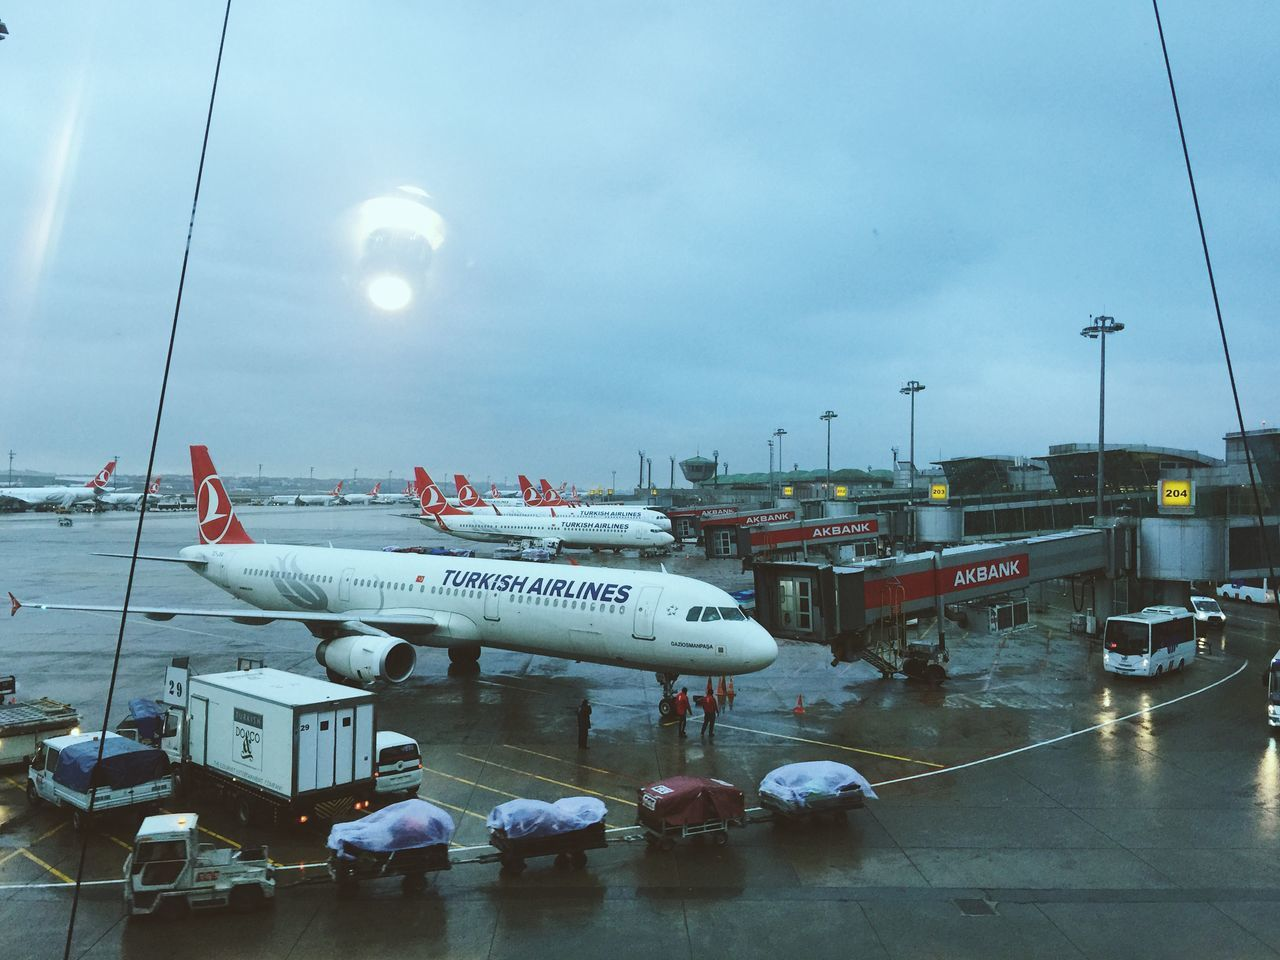 Turkish airlines planes are parked at Istanbul Ataturk Airport Airport Airport Departure Area Airport Runway Airport Terminal Architecture Beautiful EyeEm EyeEm Best Shots EyeEm Gallery Istanbul Istanbul Ataturk Airport Lagguage Mode Of Transport Plane Rain Sky Transportation Travel Turkey Turkish Airlines